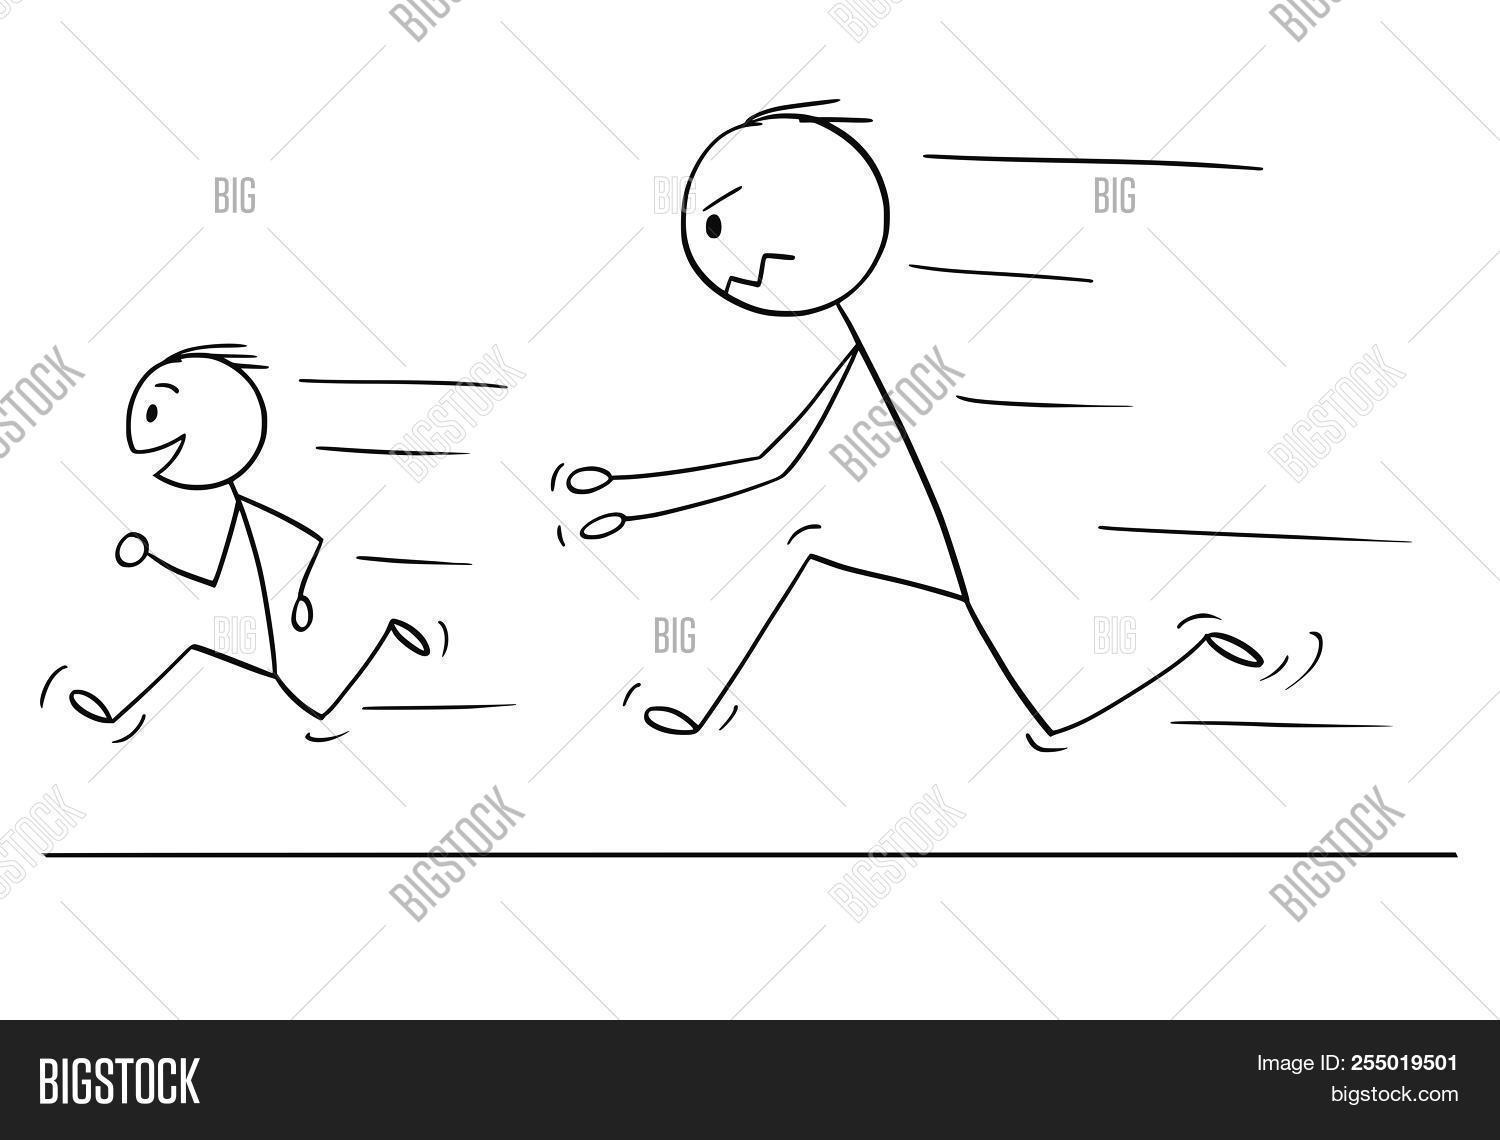 Cartoon Stick Drawing Conceptual Illustration Of Frustrated And Angry Father Chasing Naughty And Dis 255019501 Image Stock Photo